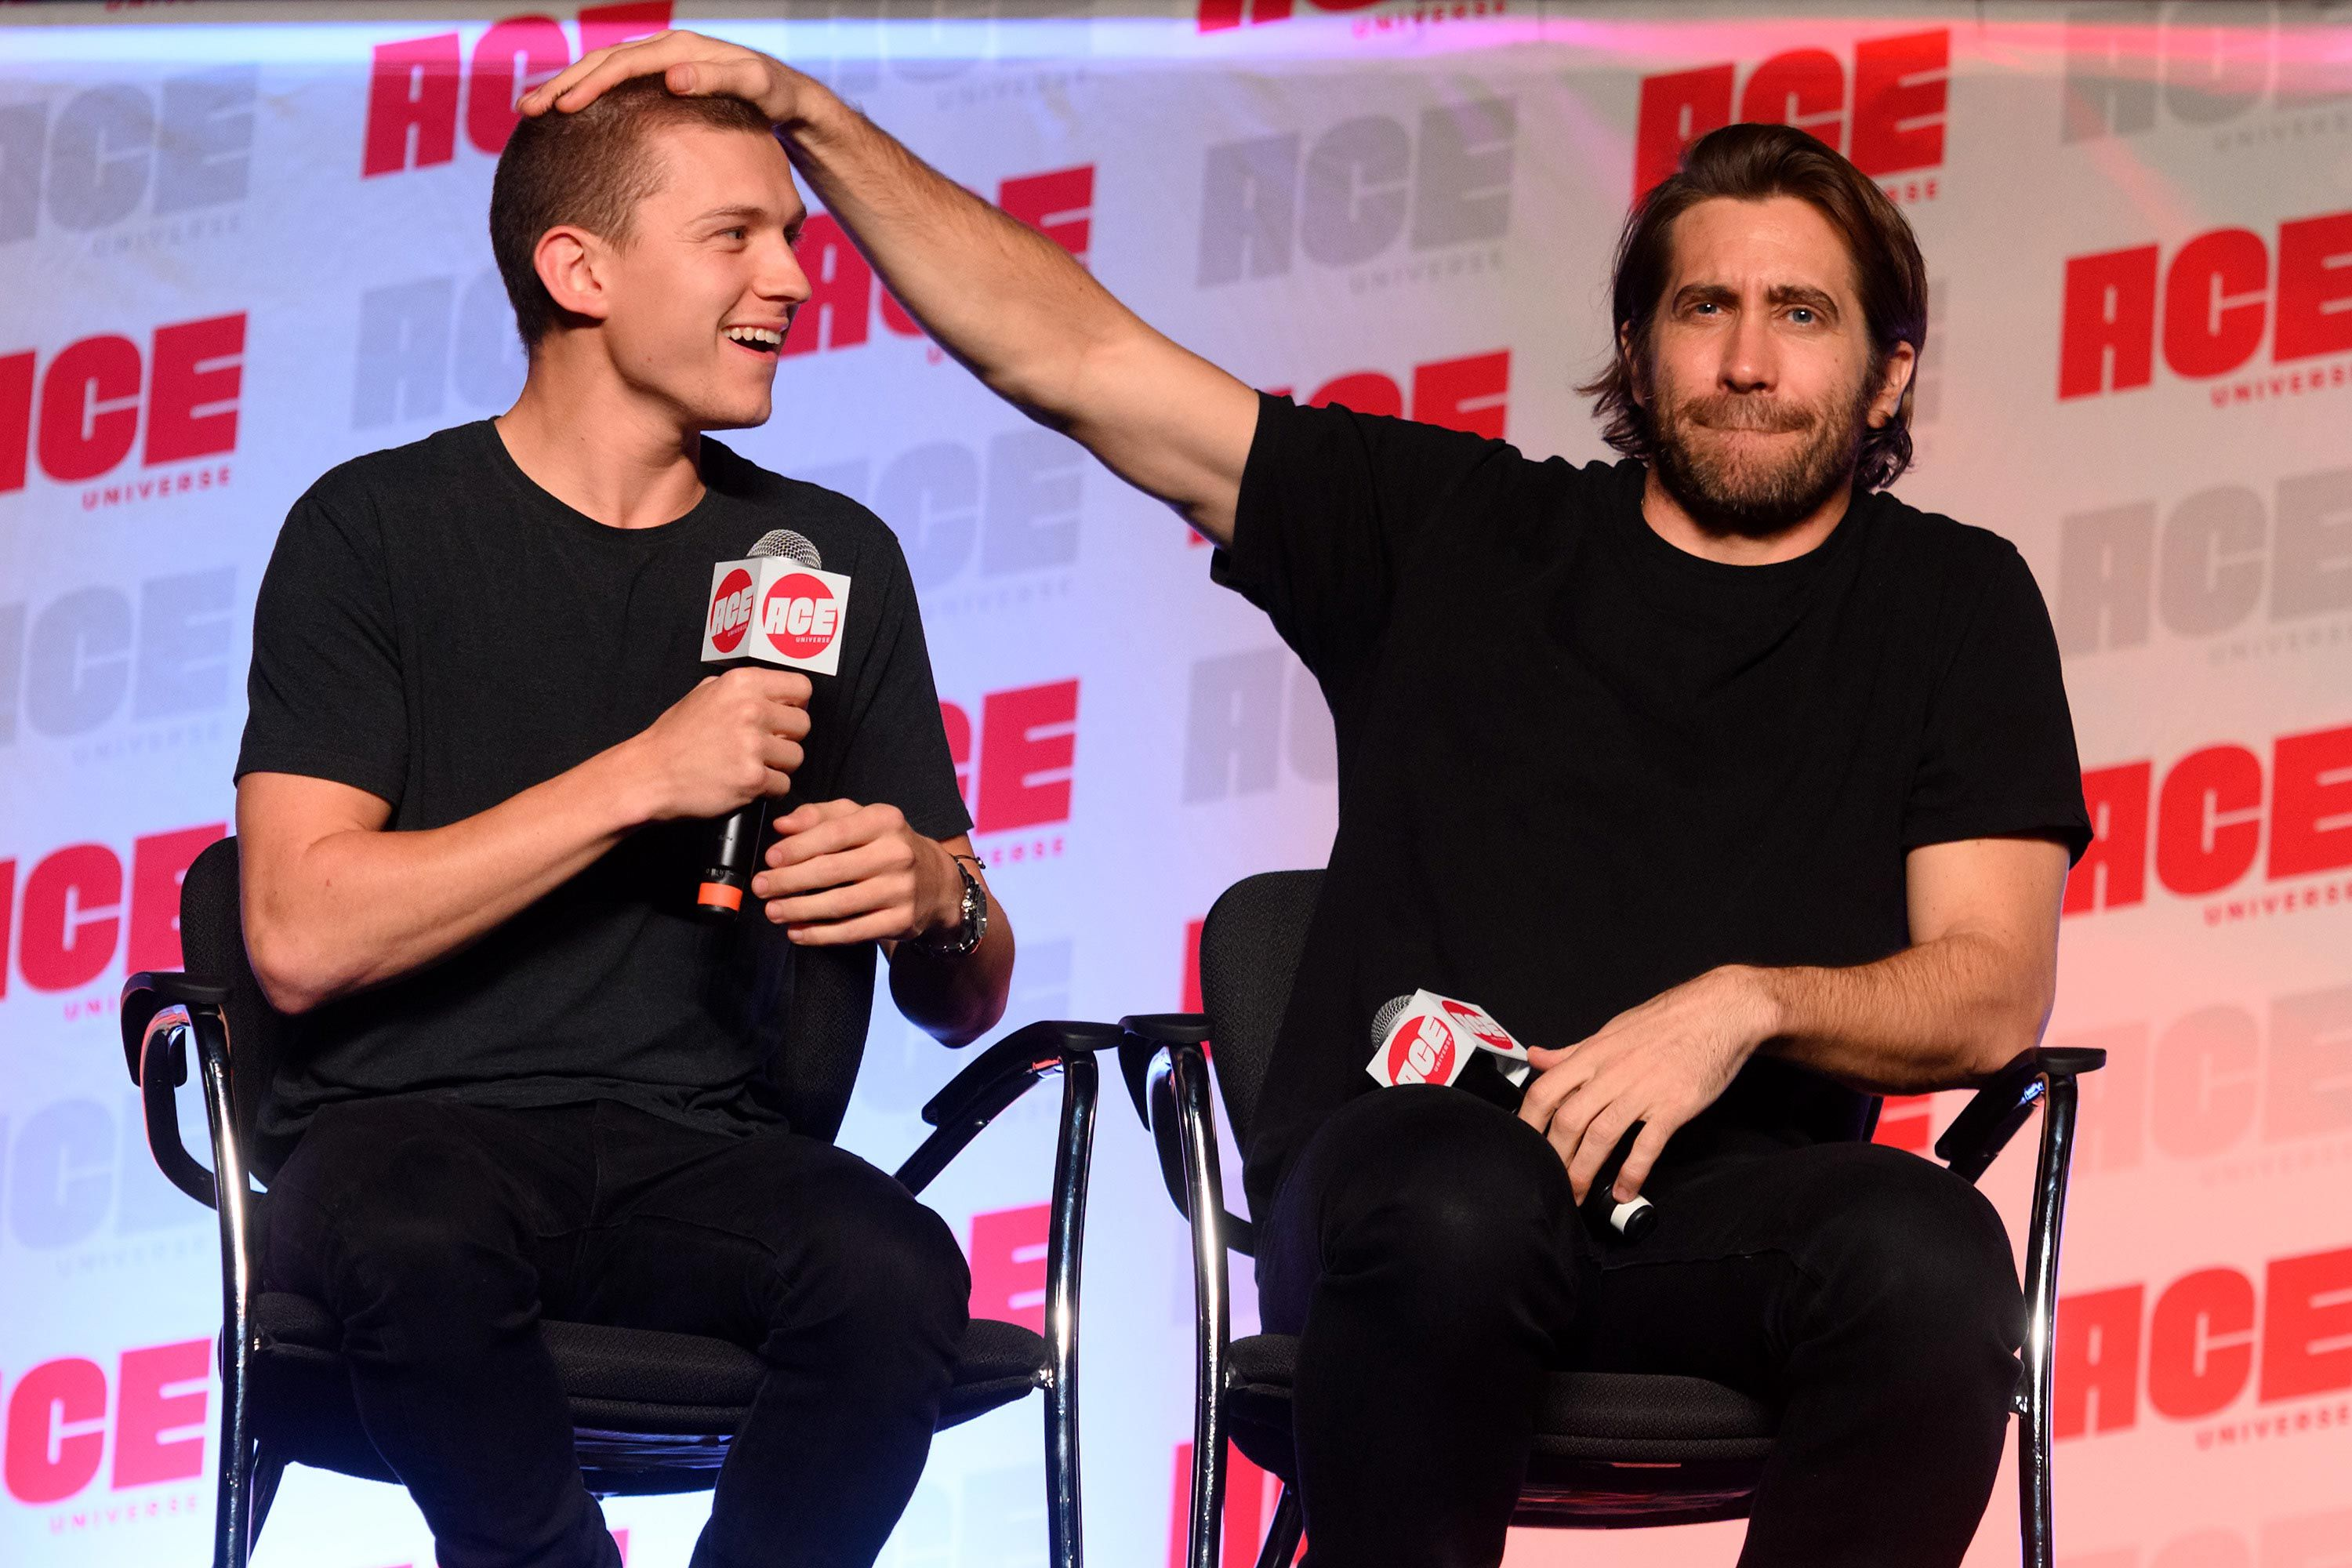 Marvel's Tom Holland shows off new buzzcut at fan event with Jake Gyllenhaal